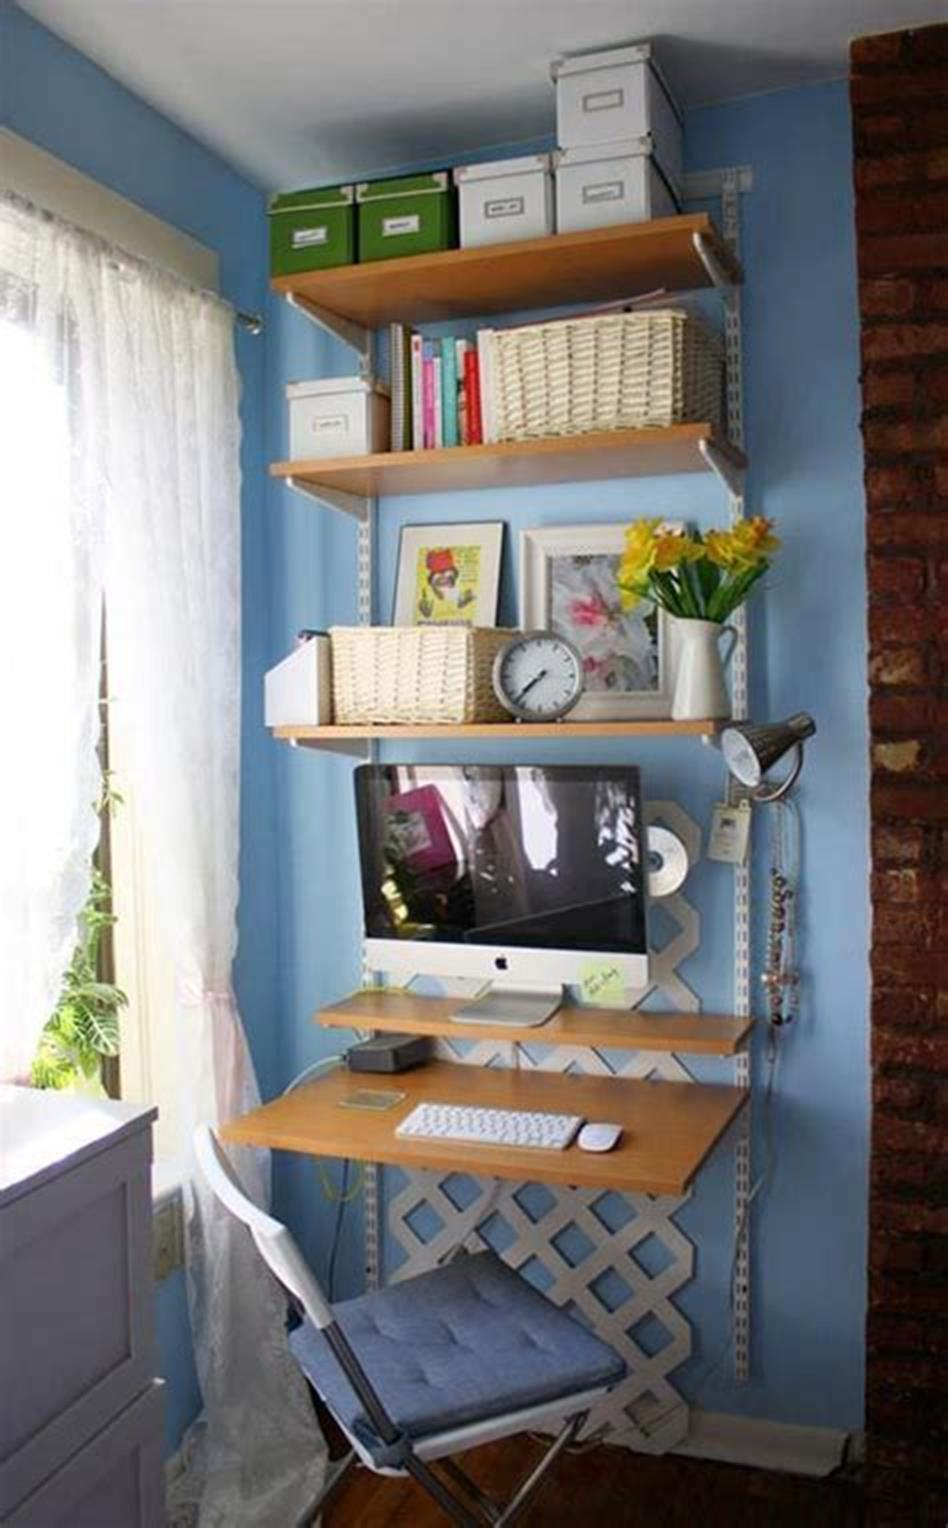 50 Best Small Space Office Decorating Ideas On a Budget 2019 53